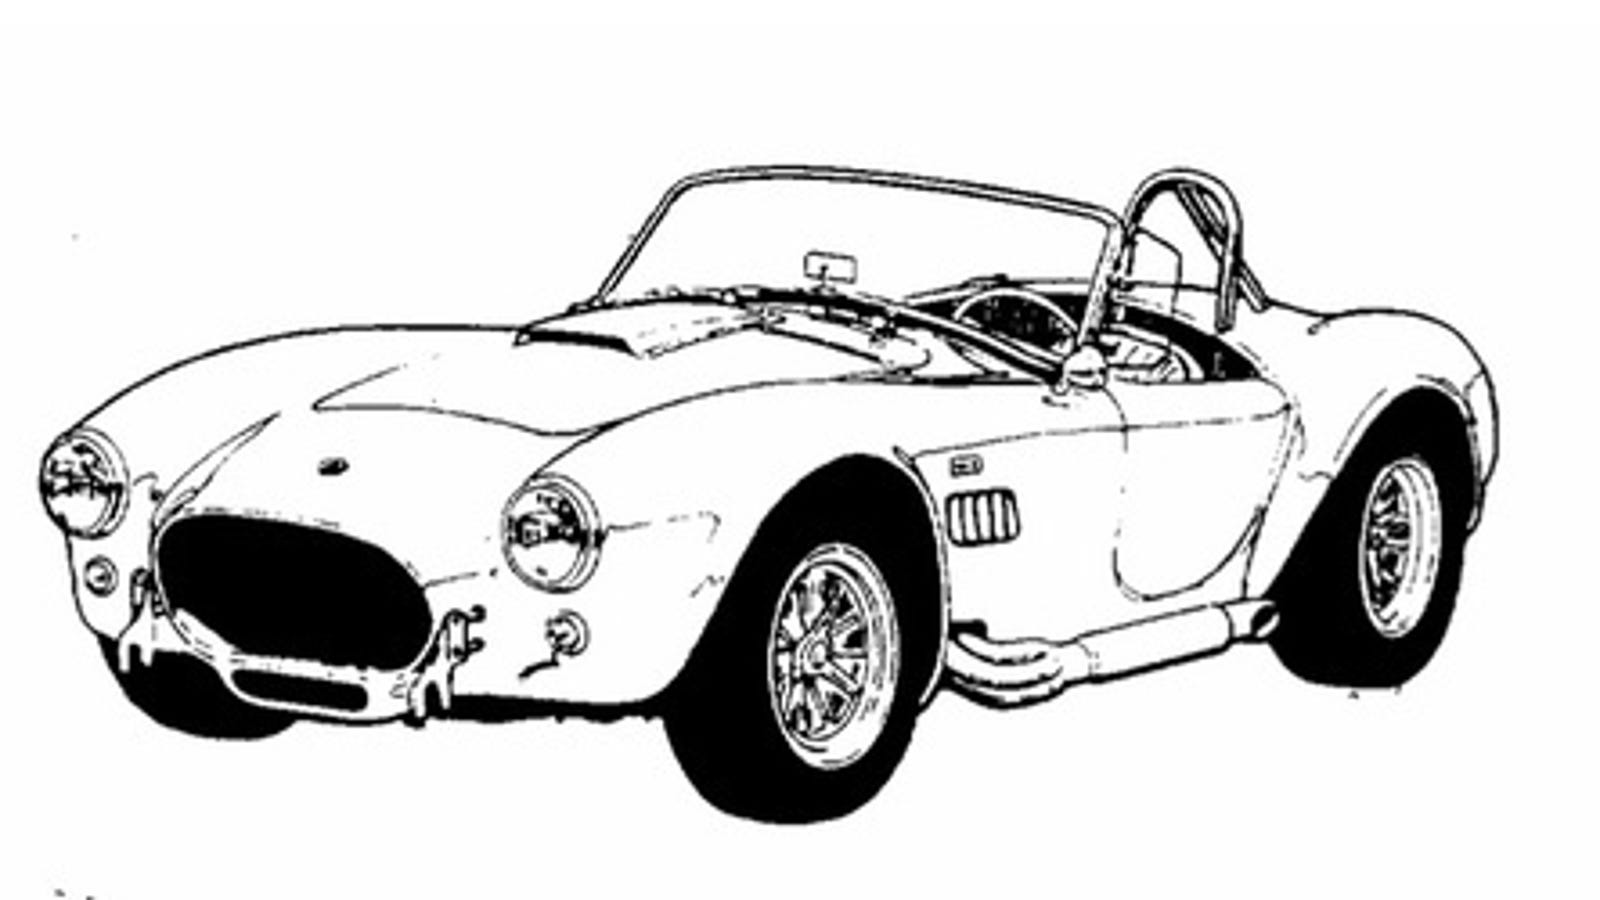 Carroll Shelby Loses Trademark Fight Over Cobra S Design